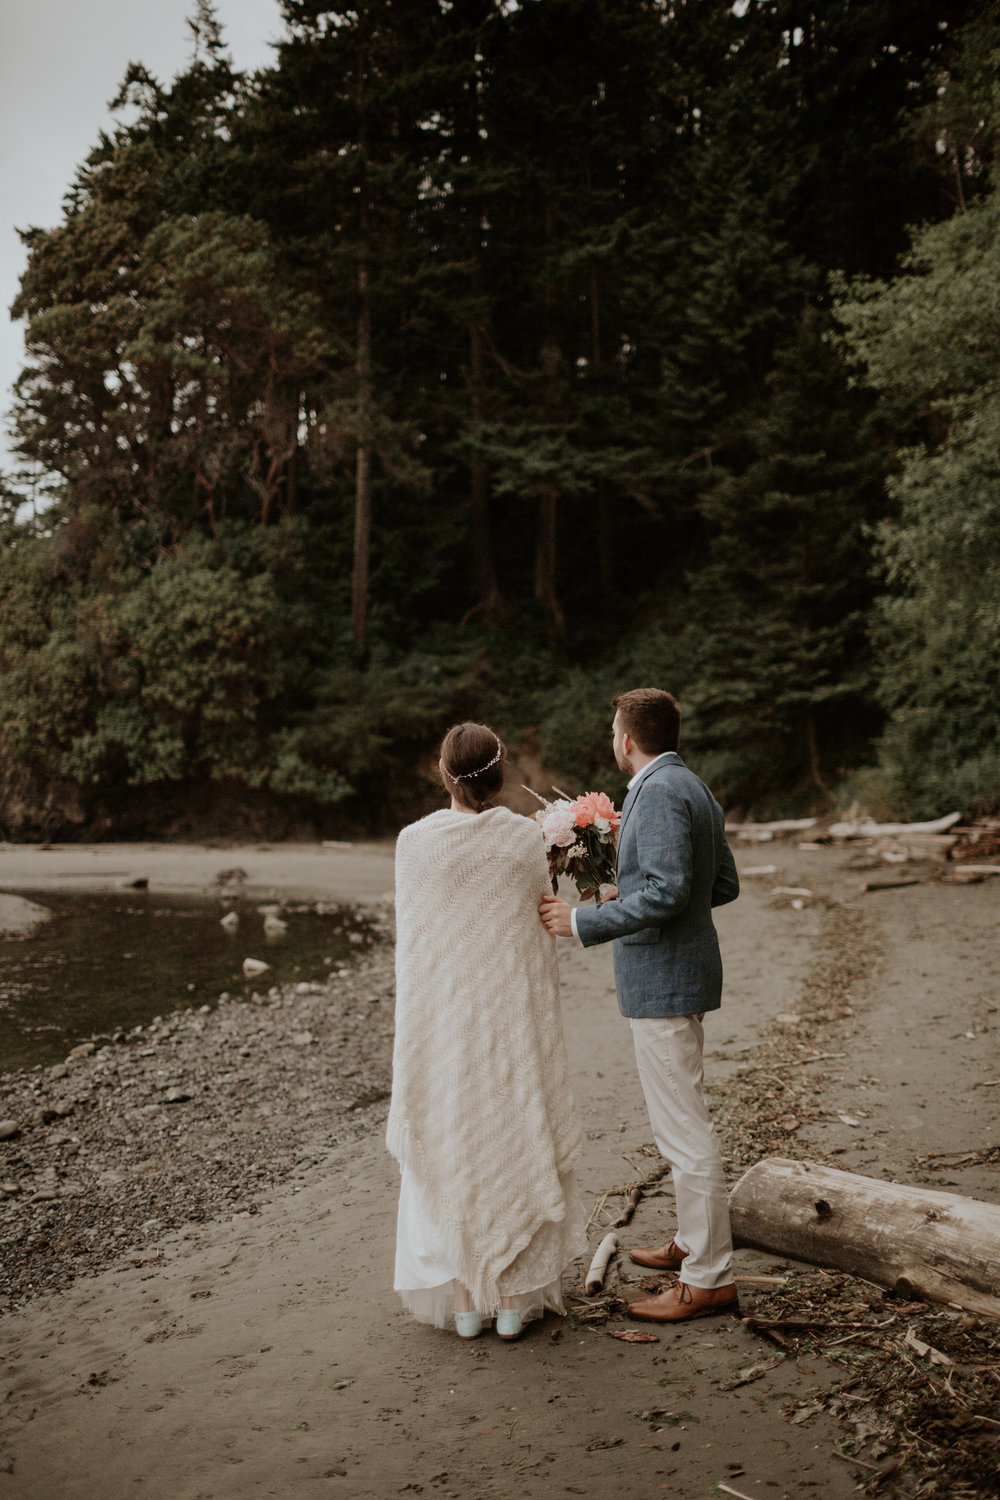 PNW-elopement-wedding-engagement-olympic national park-port angeles-hurricane ridge-lake crescent-kayla dawn photography- photographer-photography-kayladawnphoto-287.jpg